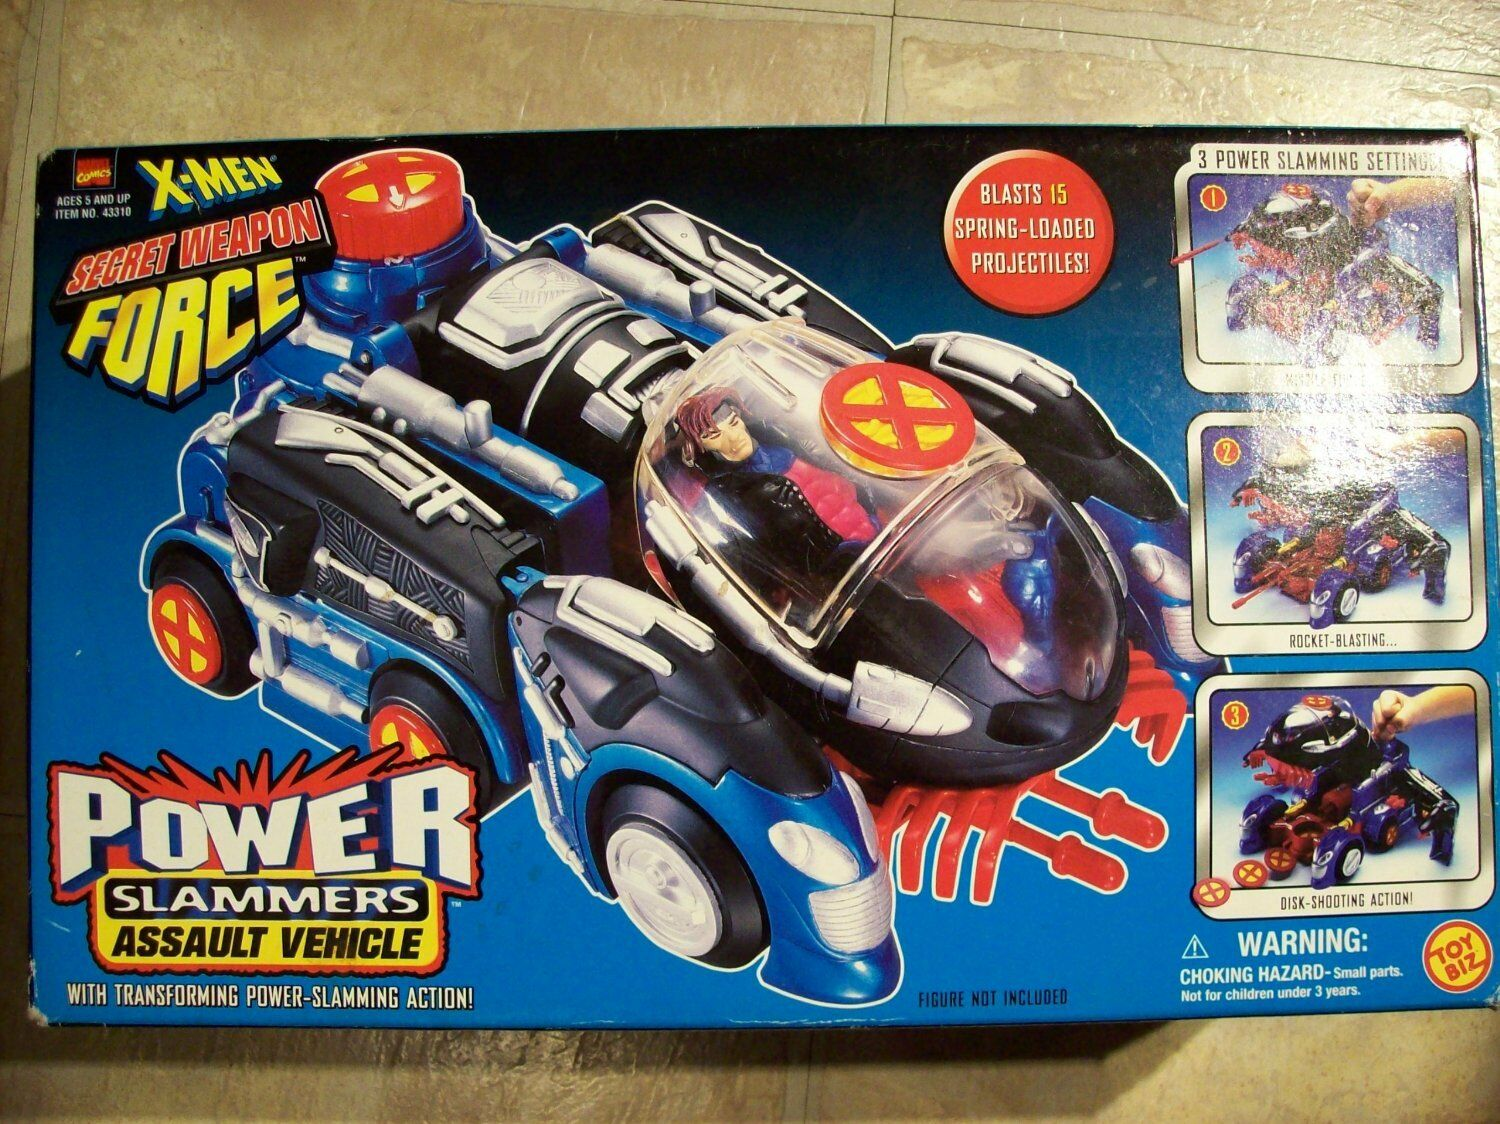 X-Men Secret Weapon Power Slammers Assault Vehicle New